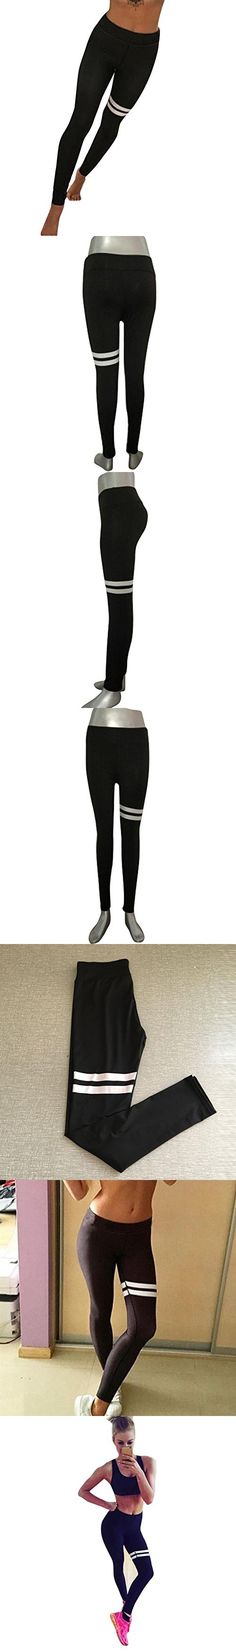 Athletic Trouser TOOPOOT Tights Fitness Yoga Pants Leggings For Womens Ladies (S)